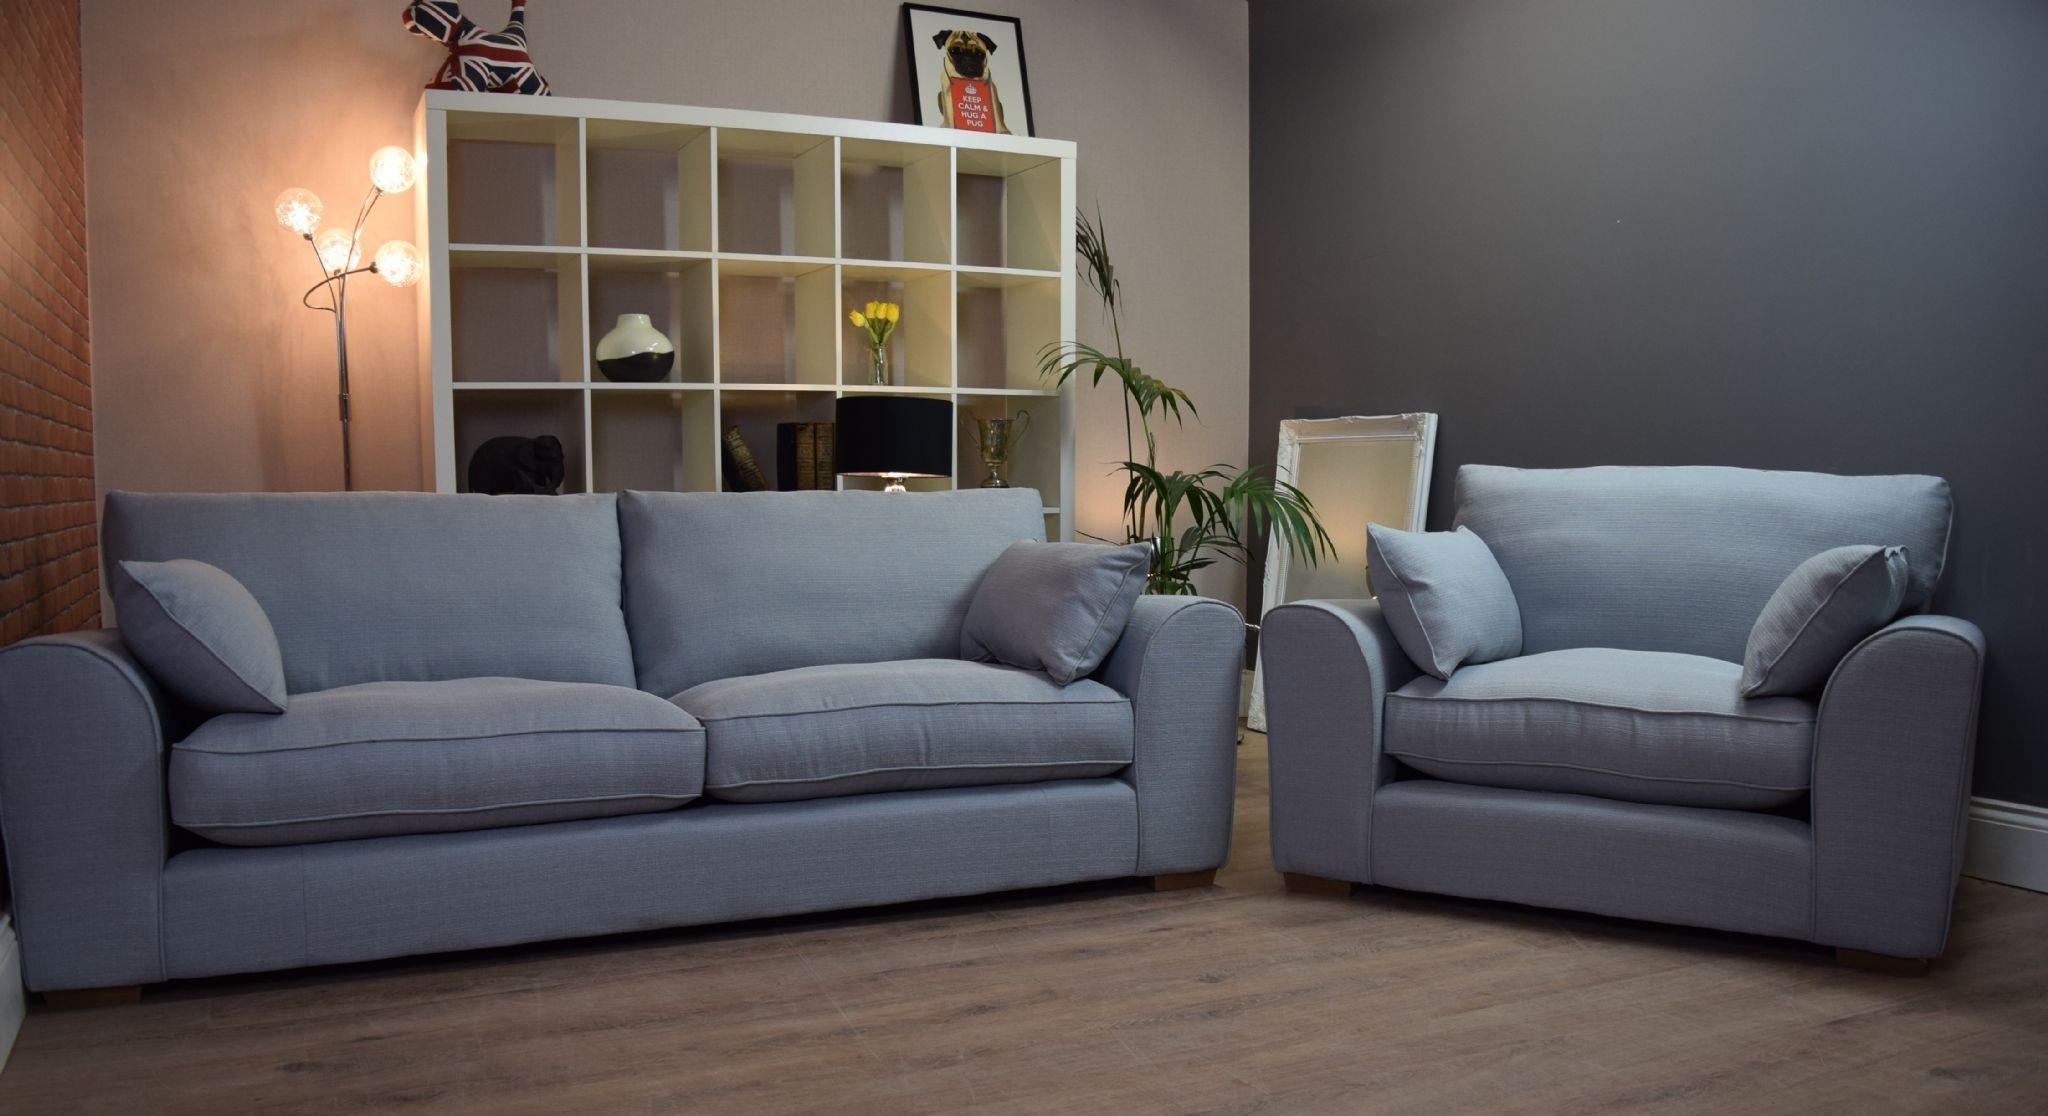 Set New Ashdown 3 Seater Sofa & Cuddle Chair Set – Duck Egg Blue Pertaining To 3 Seater Sofa And Cuddle Chairs (View 17 of 20)